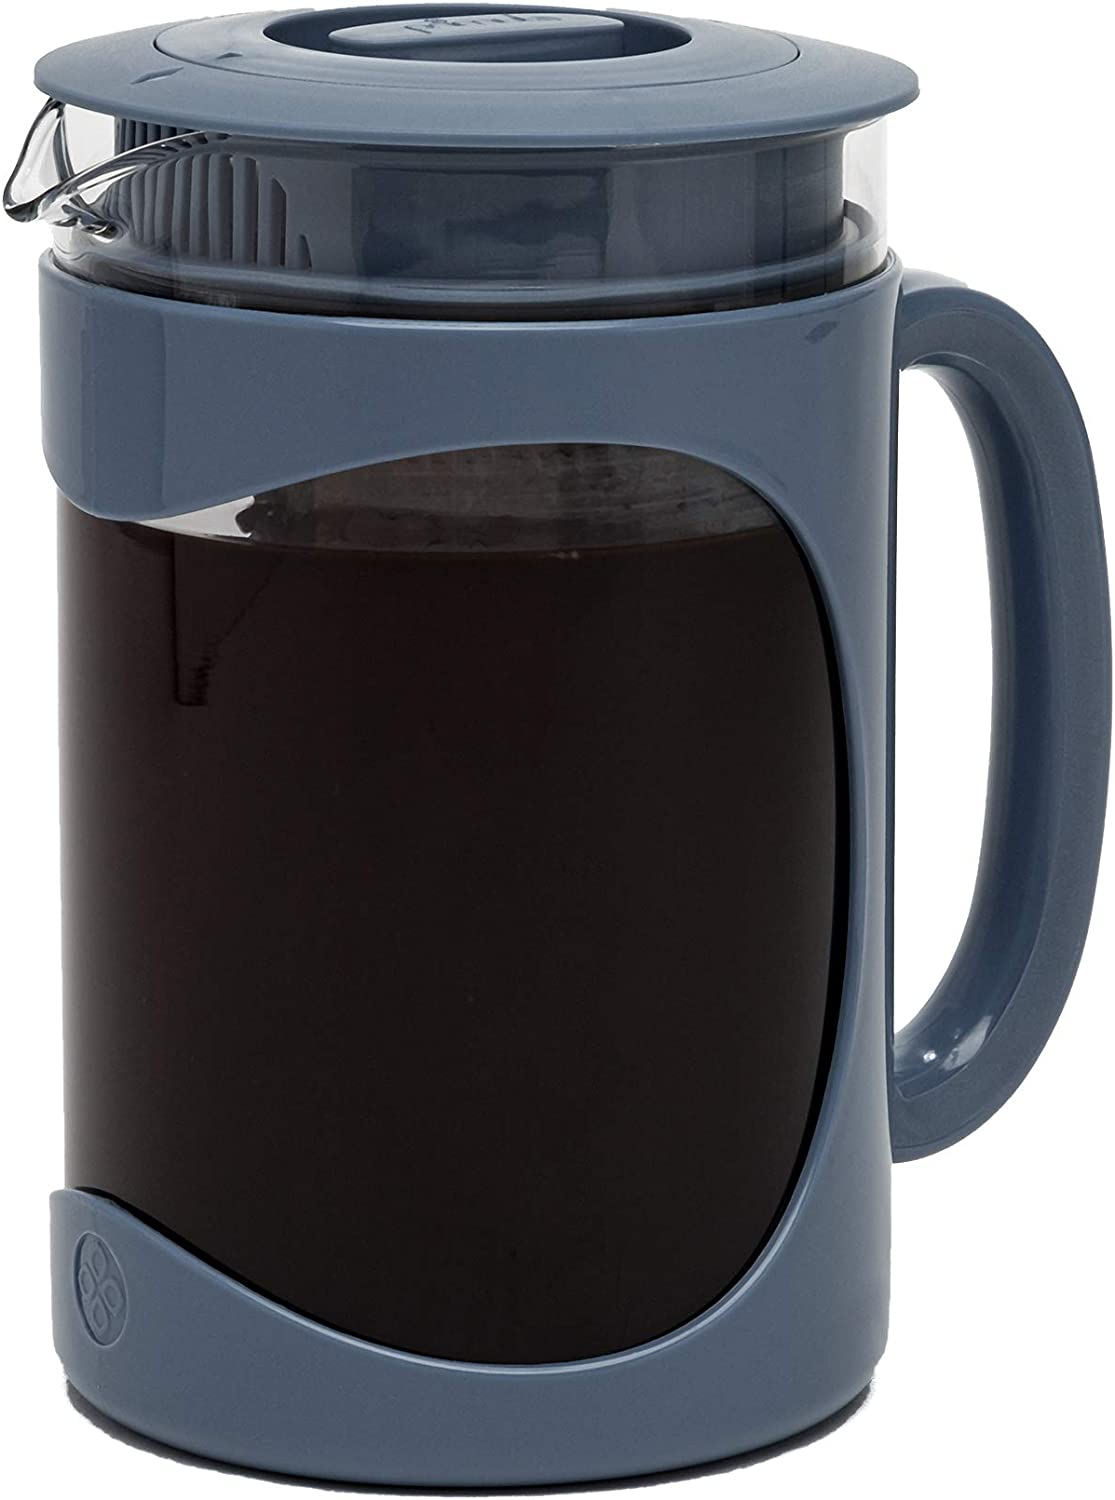 Primula 1.6 Qt 6 Cup Size  Iced Coffee Maker $12.59 Coupon